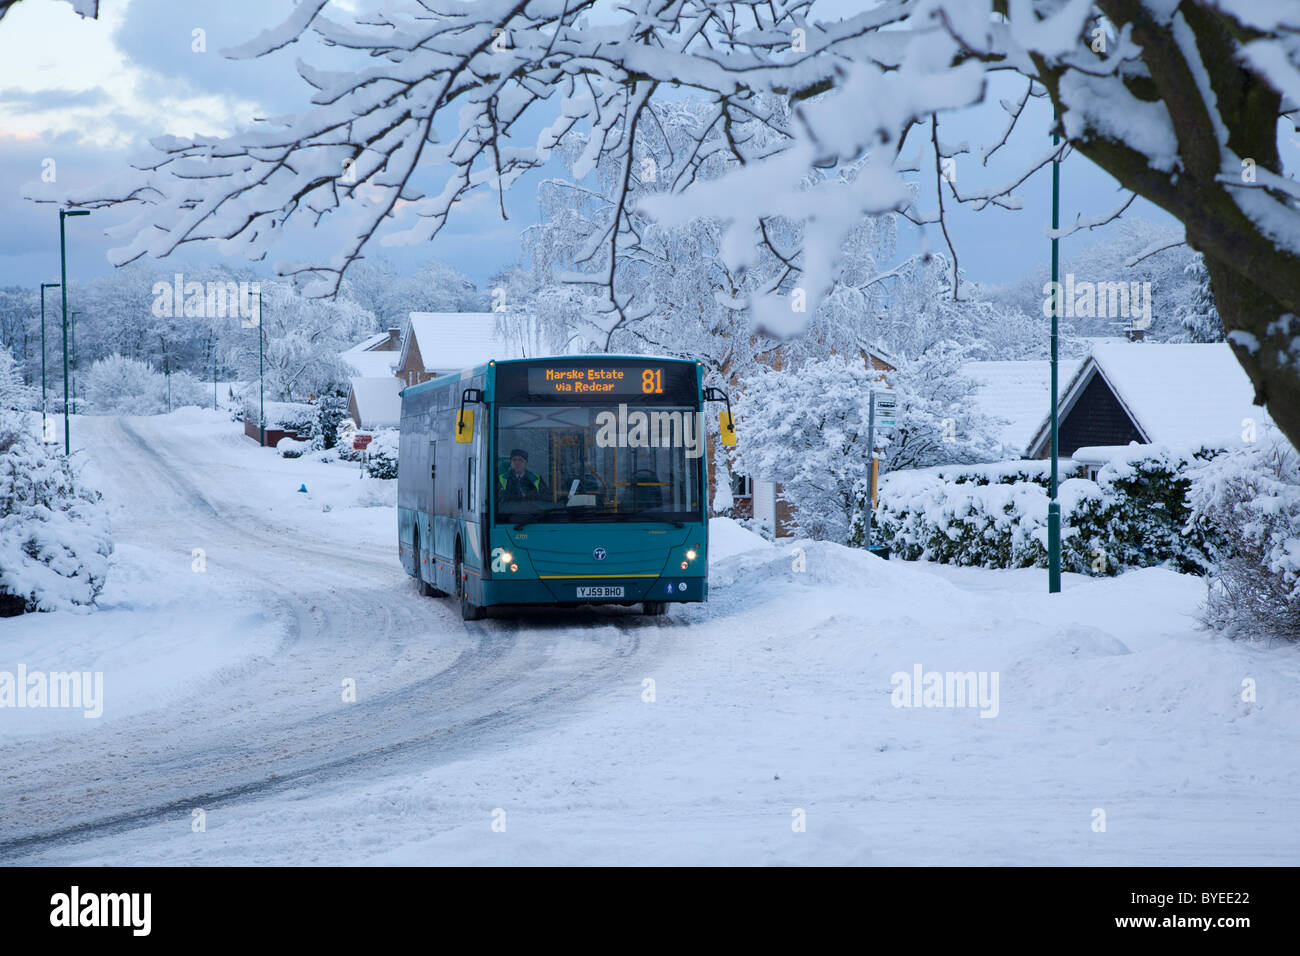 Public Transport in the snow, Guisborough Cleveland - Stock Image